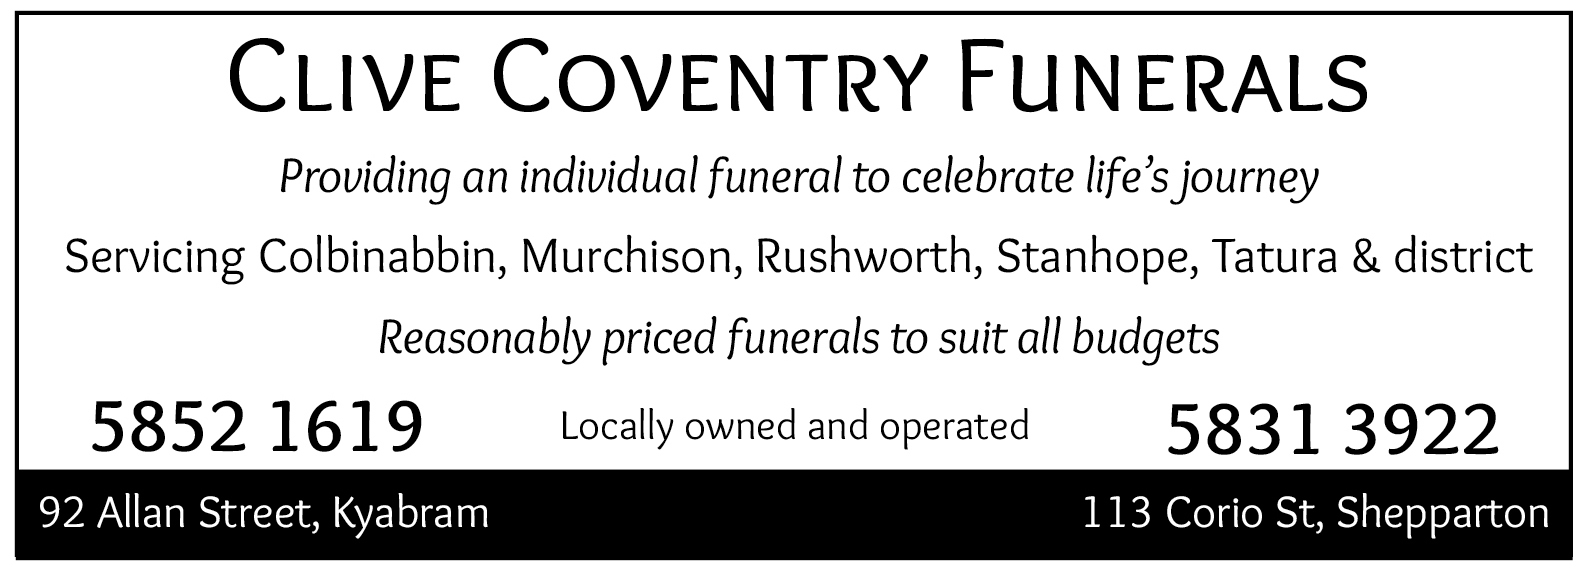 Coventry Funerals image